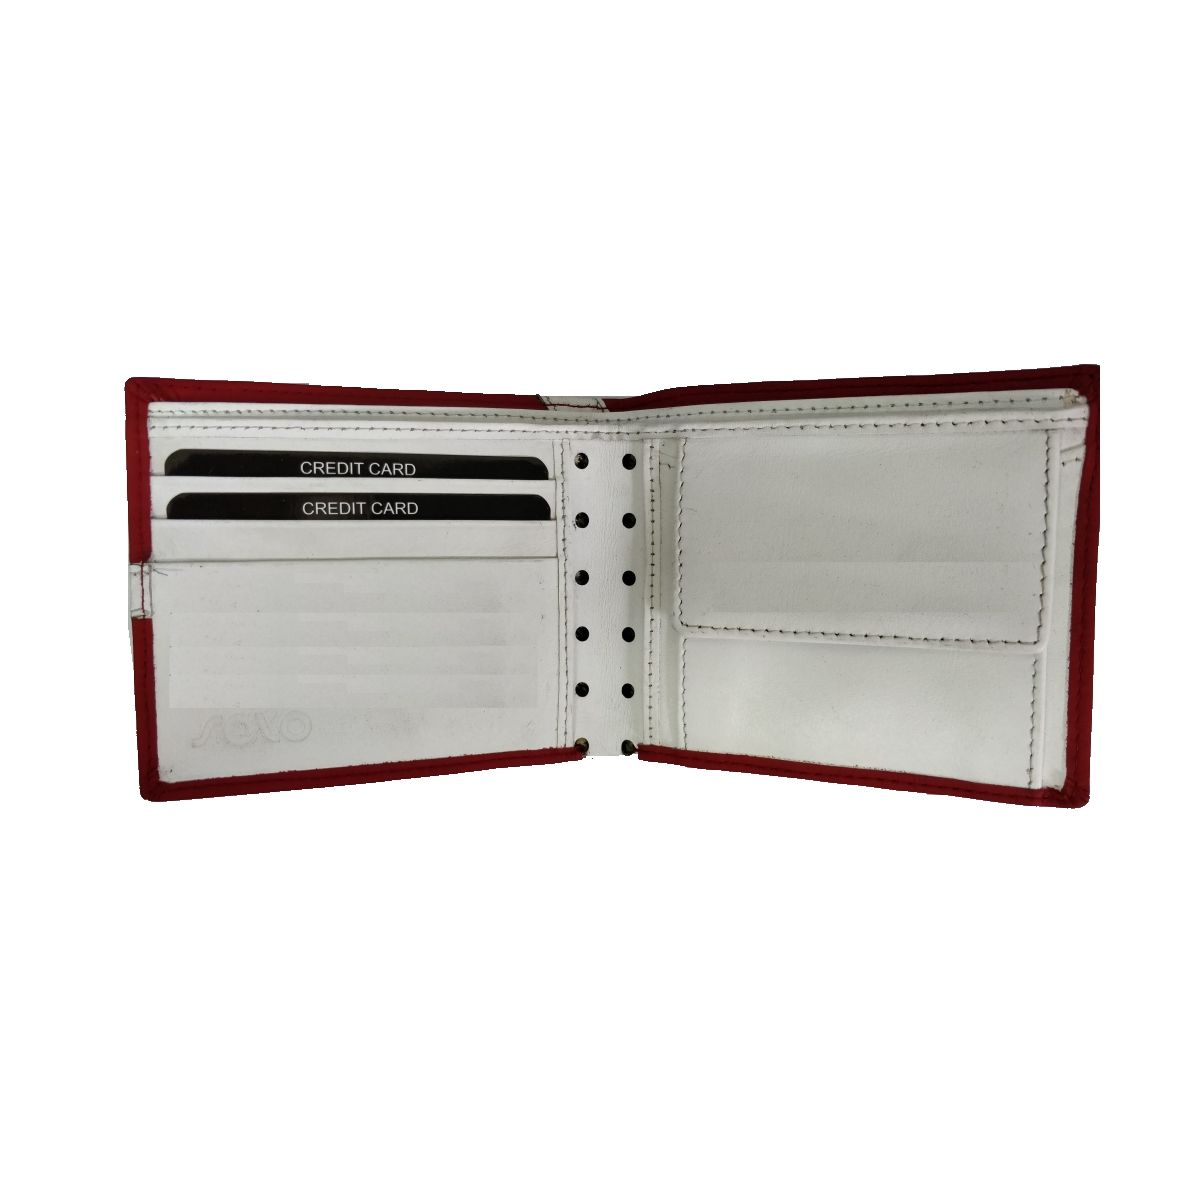 solo Leather Wallet With Broken Strip and Coin Pouch - Red/White